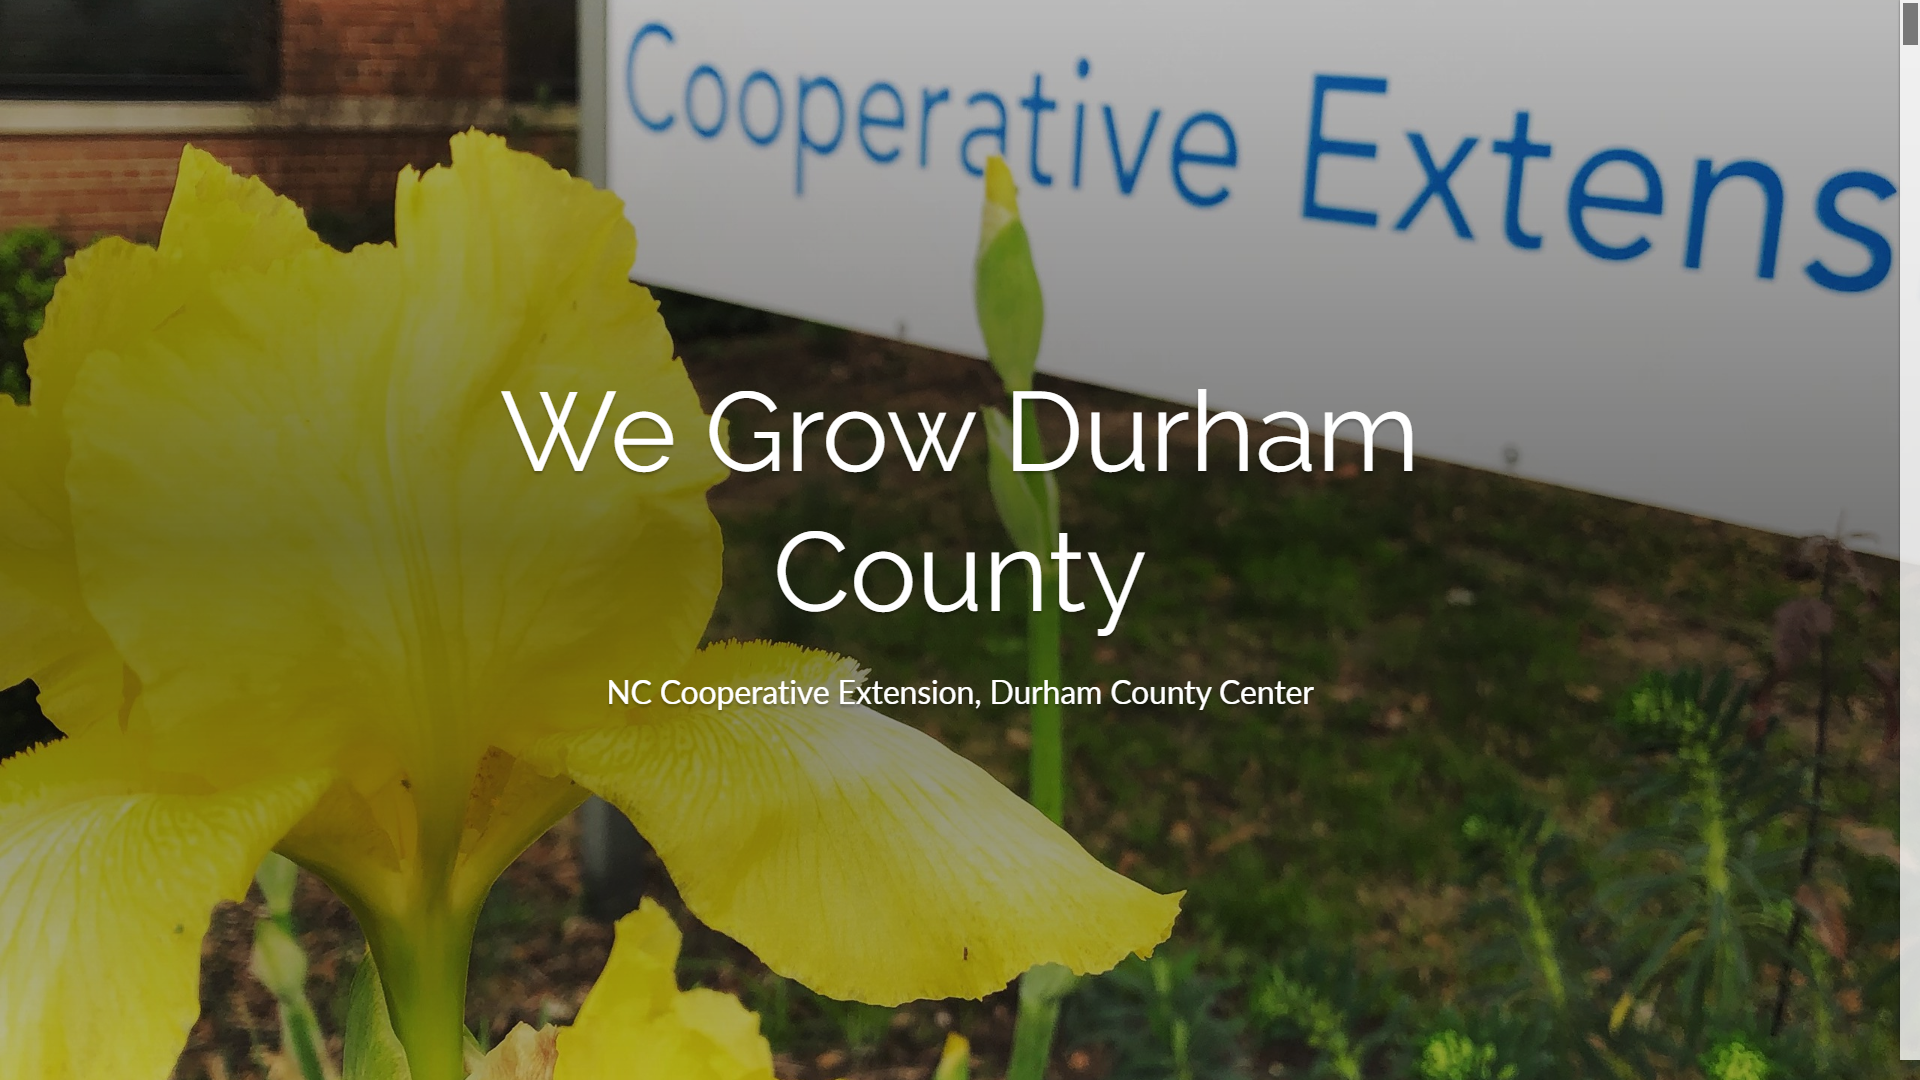 We Grow Durham County newsletter cover page